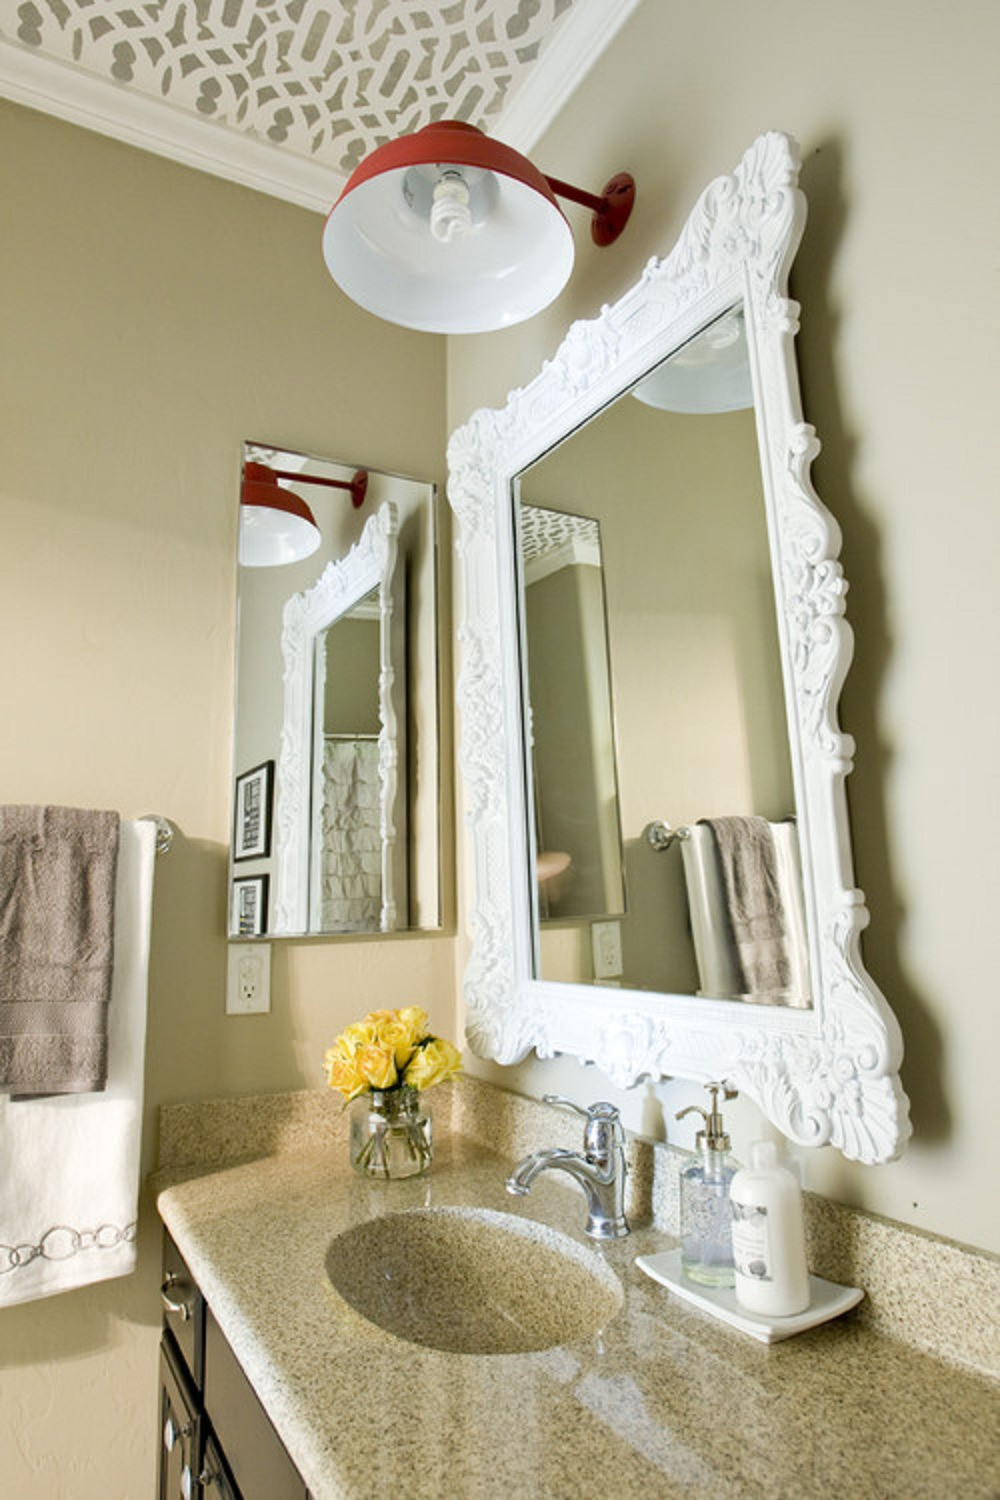 Bathroom Decorative Mirror Awesome How to Make Decorative Bathroom Mirrors